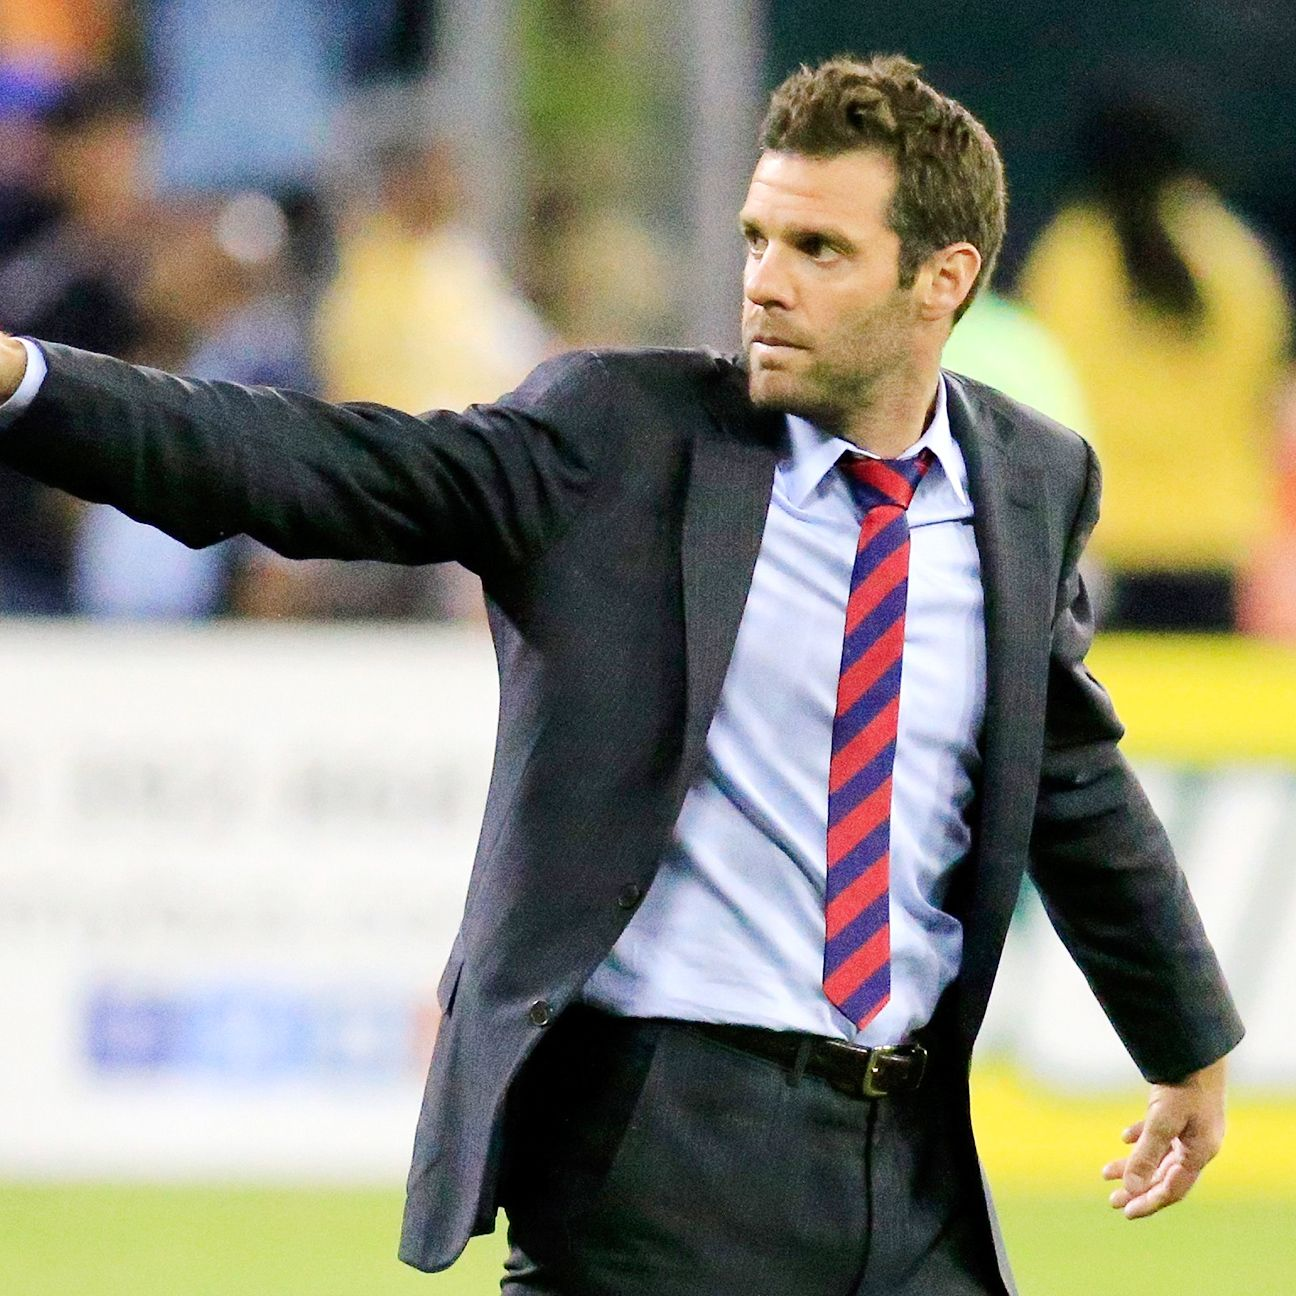 A season after finishing dead last in the Eastern Conference in 2013, Ben Olsen has DC United back in the playoffs as the No. 1 seed in the East.